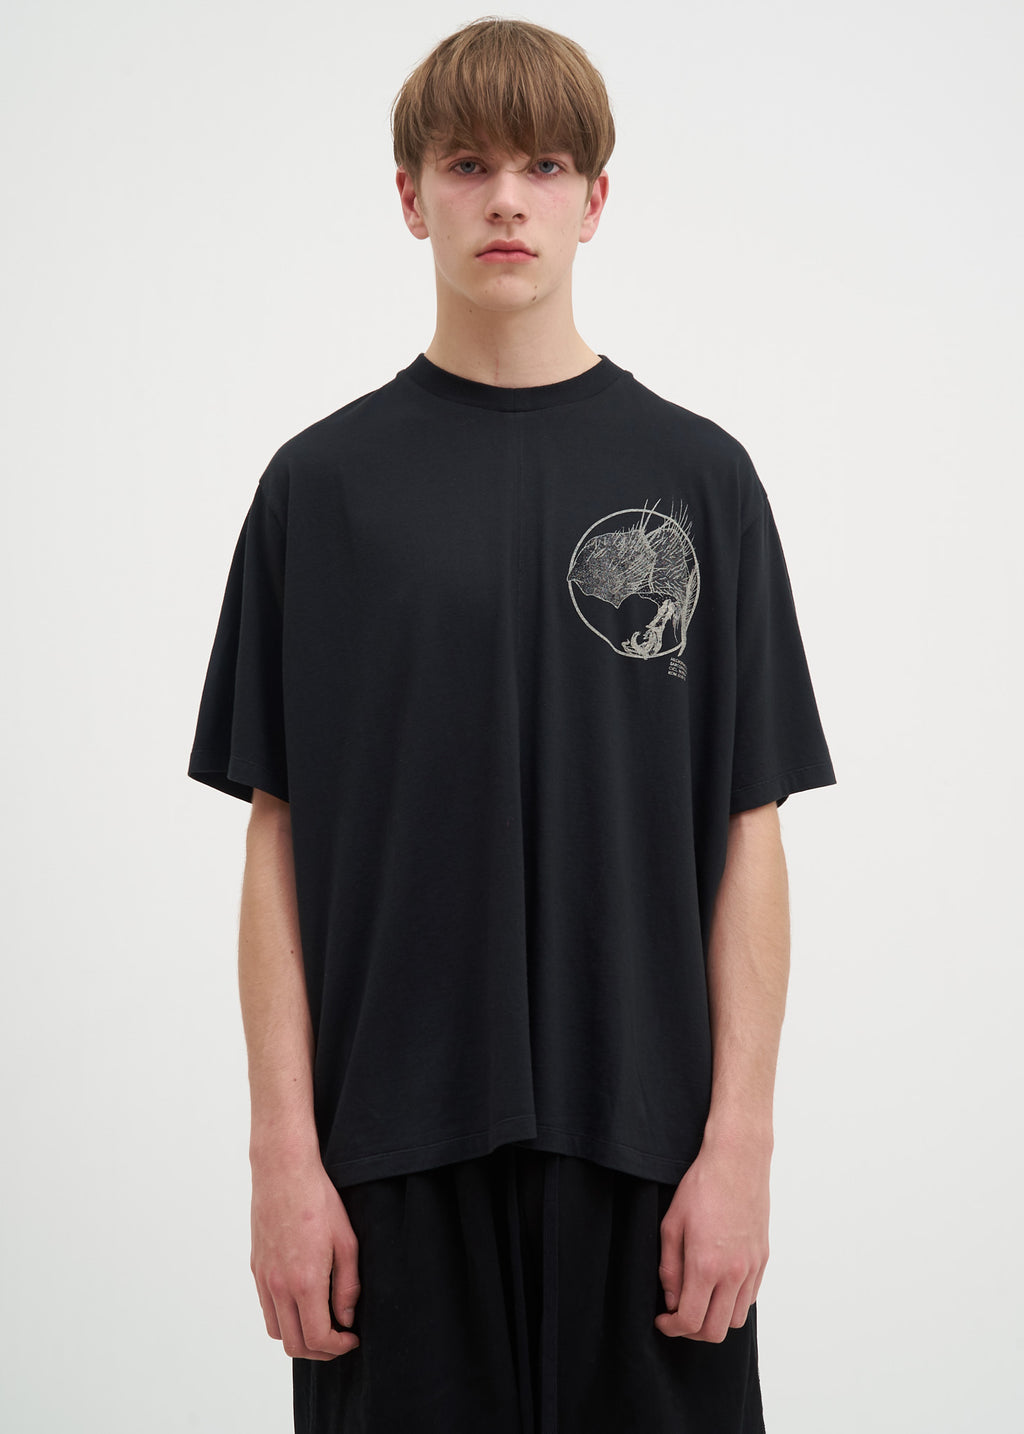 Black Necrophagous T-Shirt